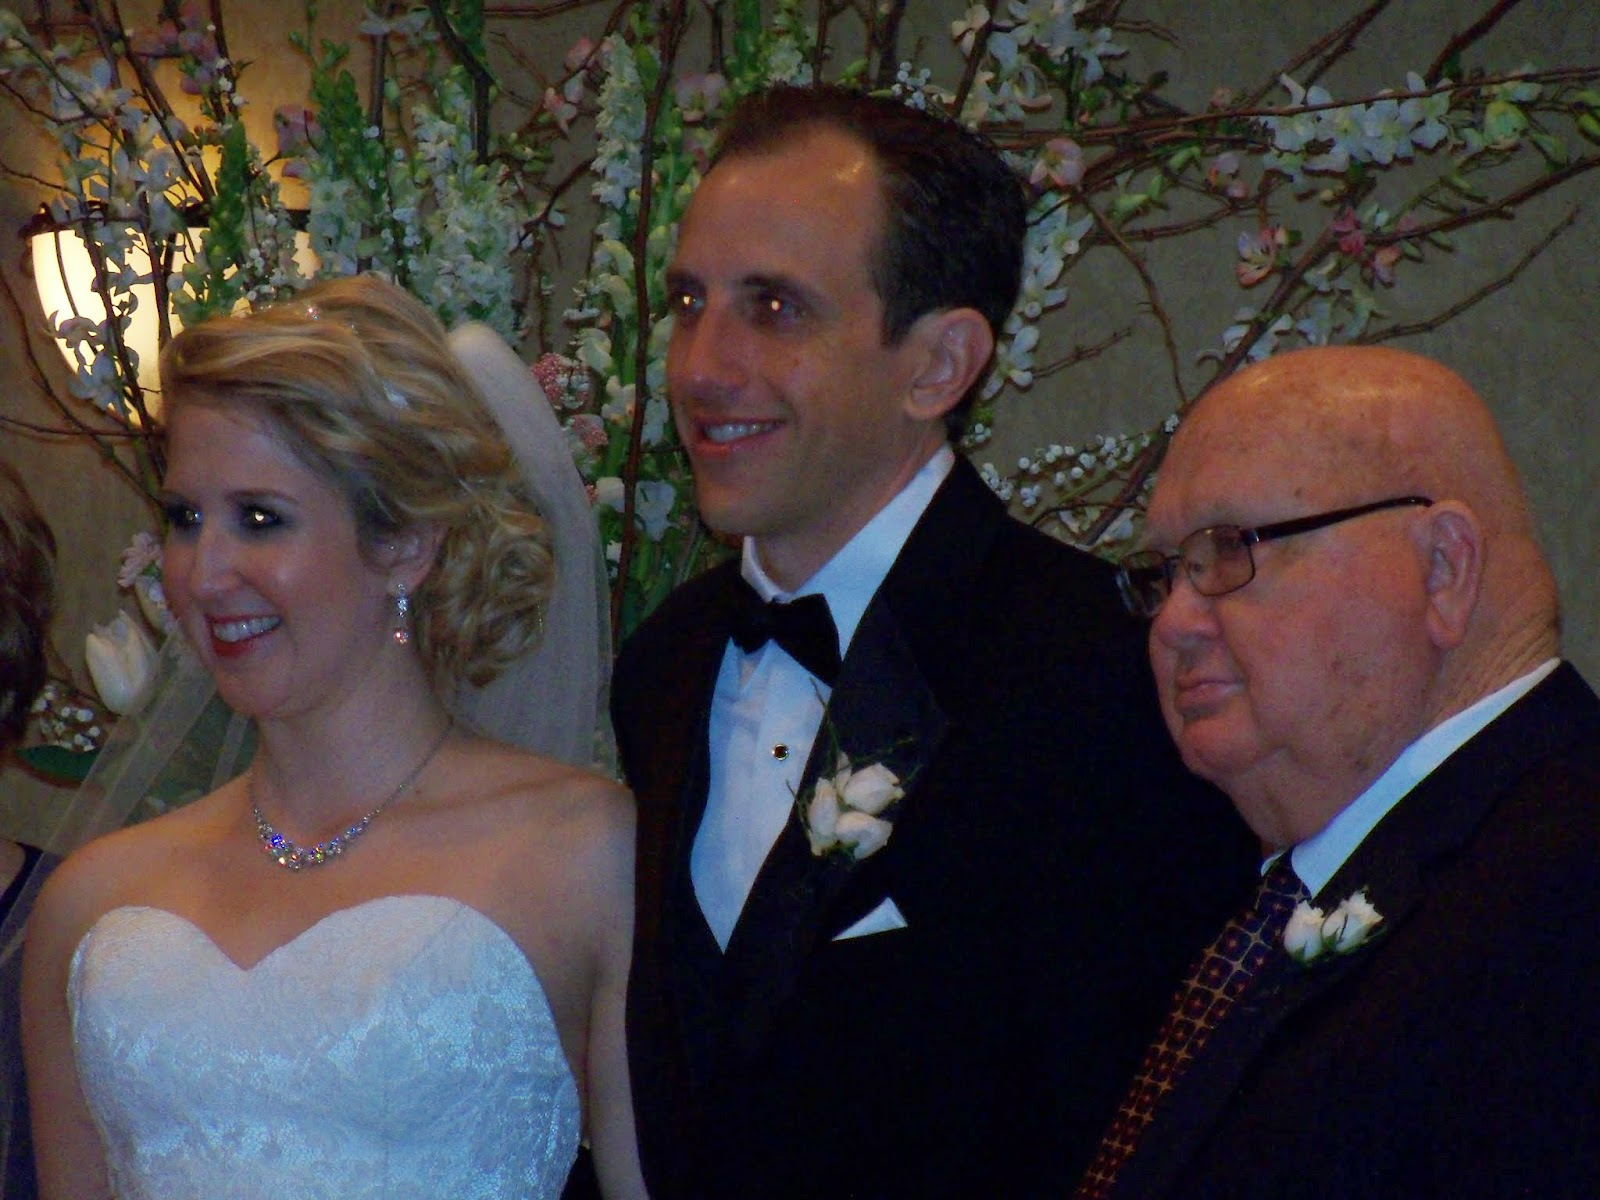 Jason and Amanda Ostroms Wedding - 116_1025.JPG